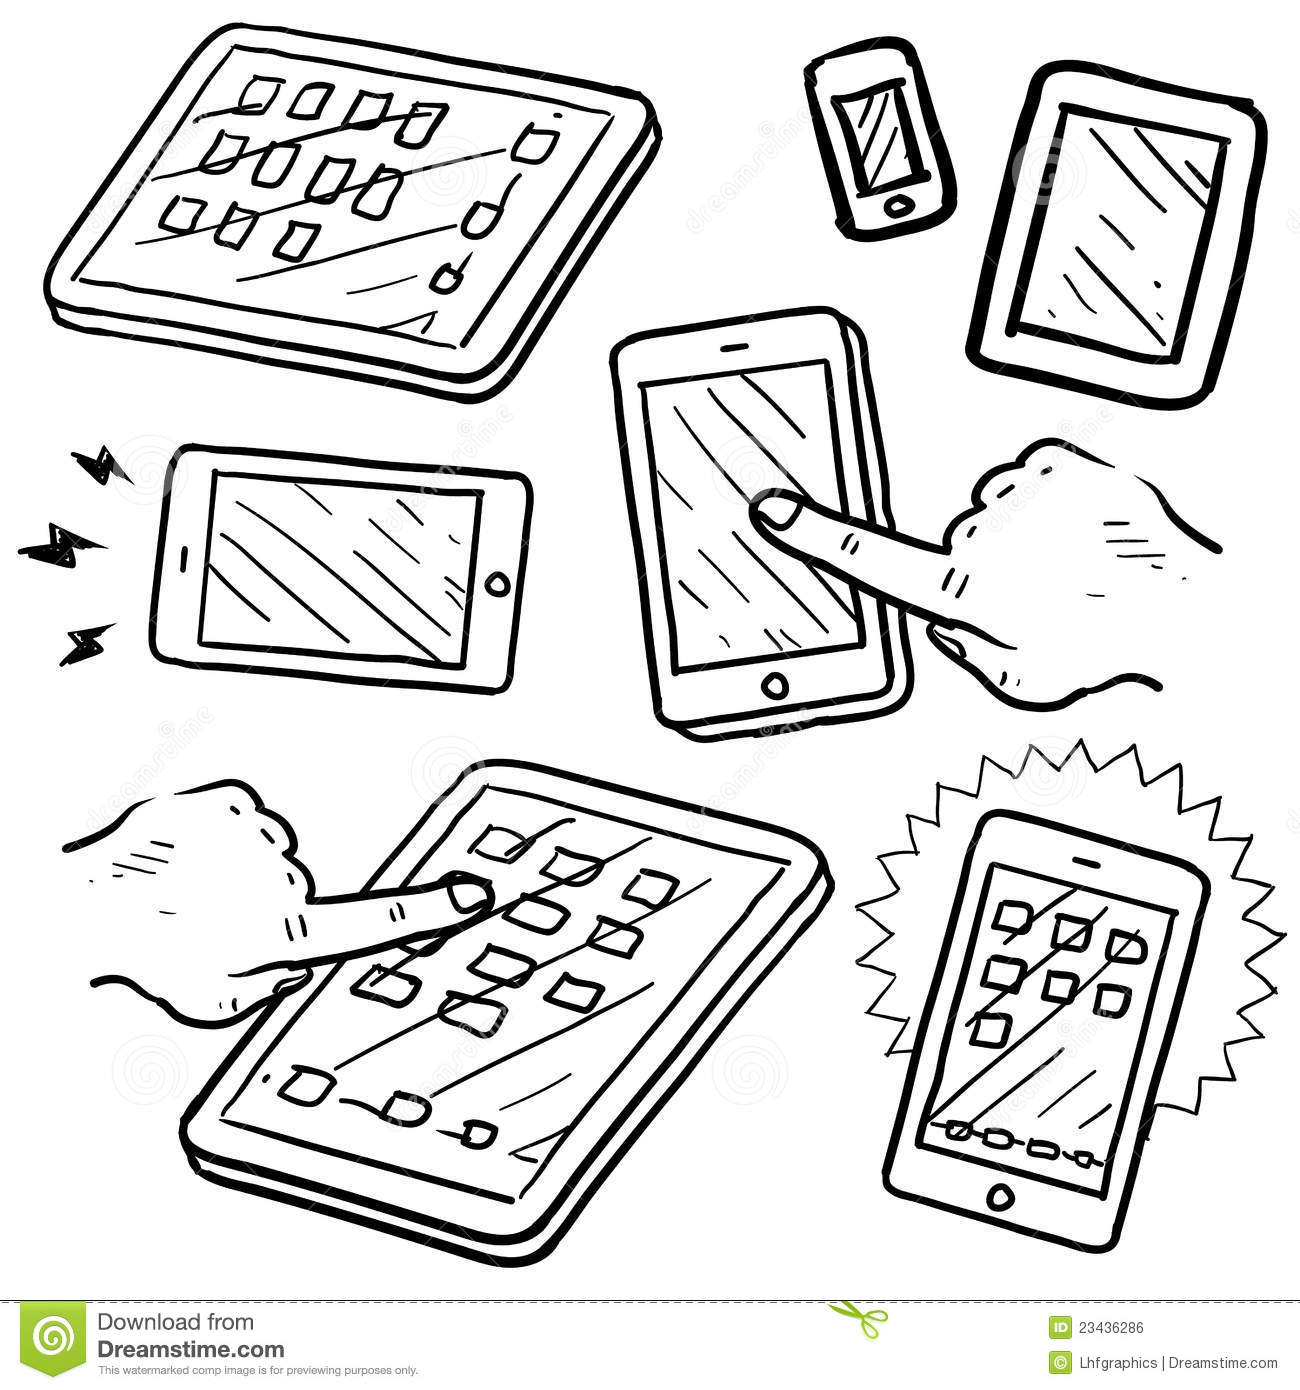 mobile devices sketch royalty free stock image